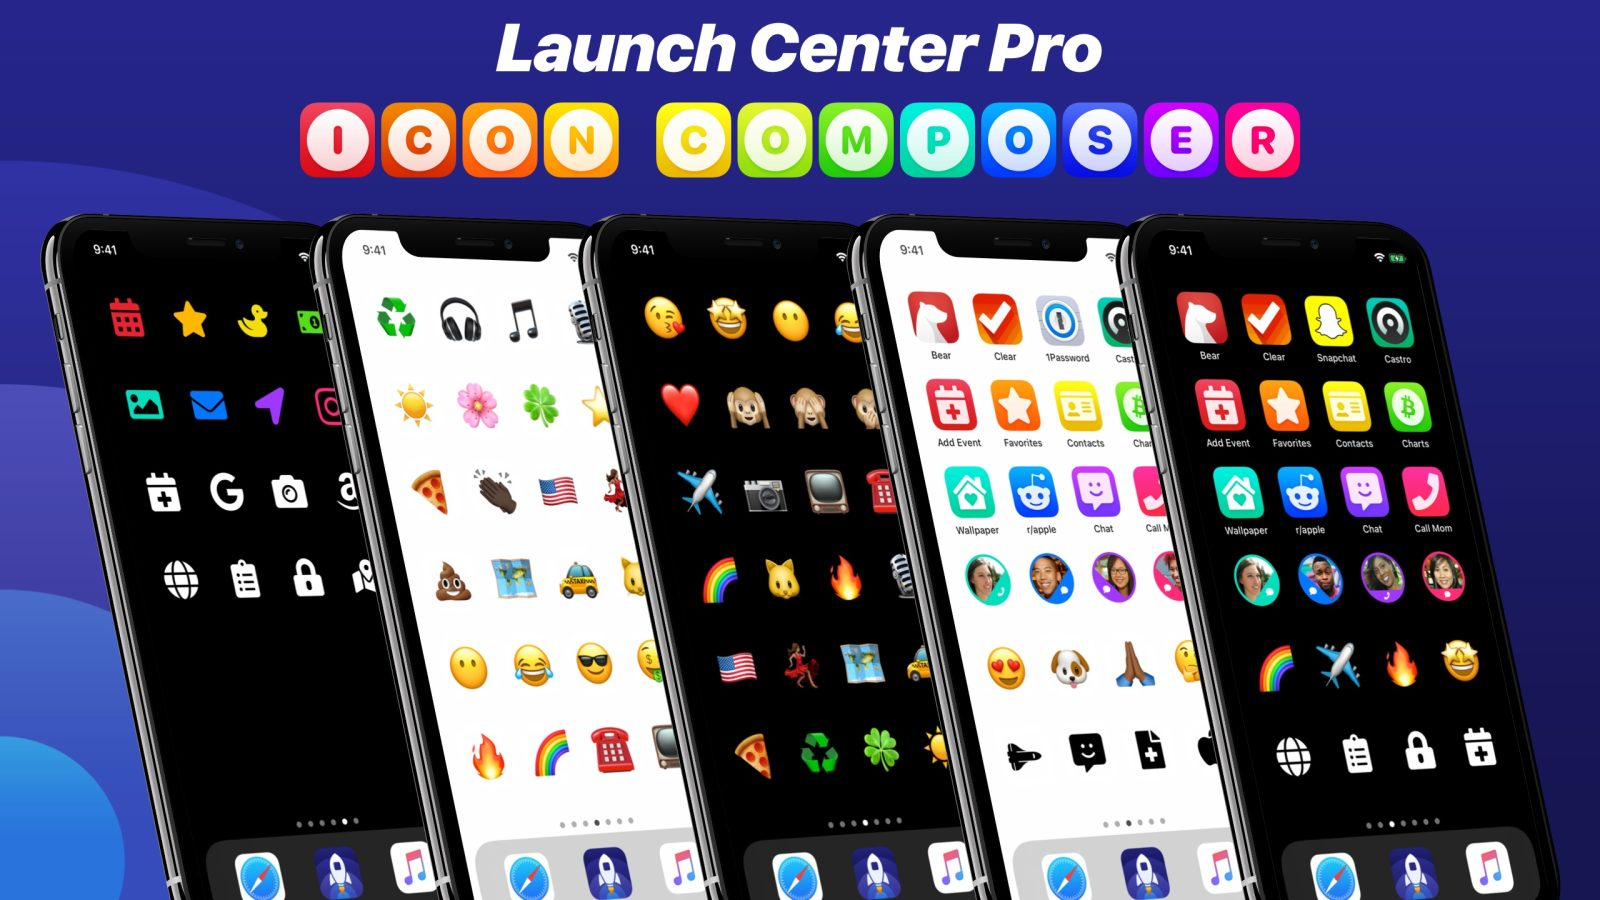 Launch Center Pro updated with all-new Icon Composer for Home screen customization